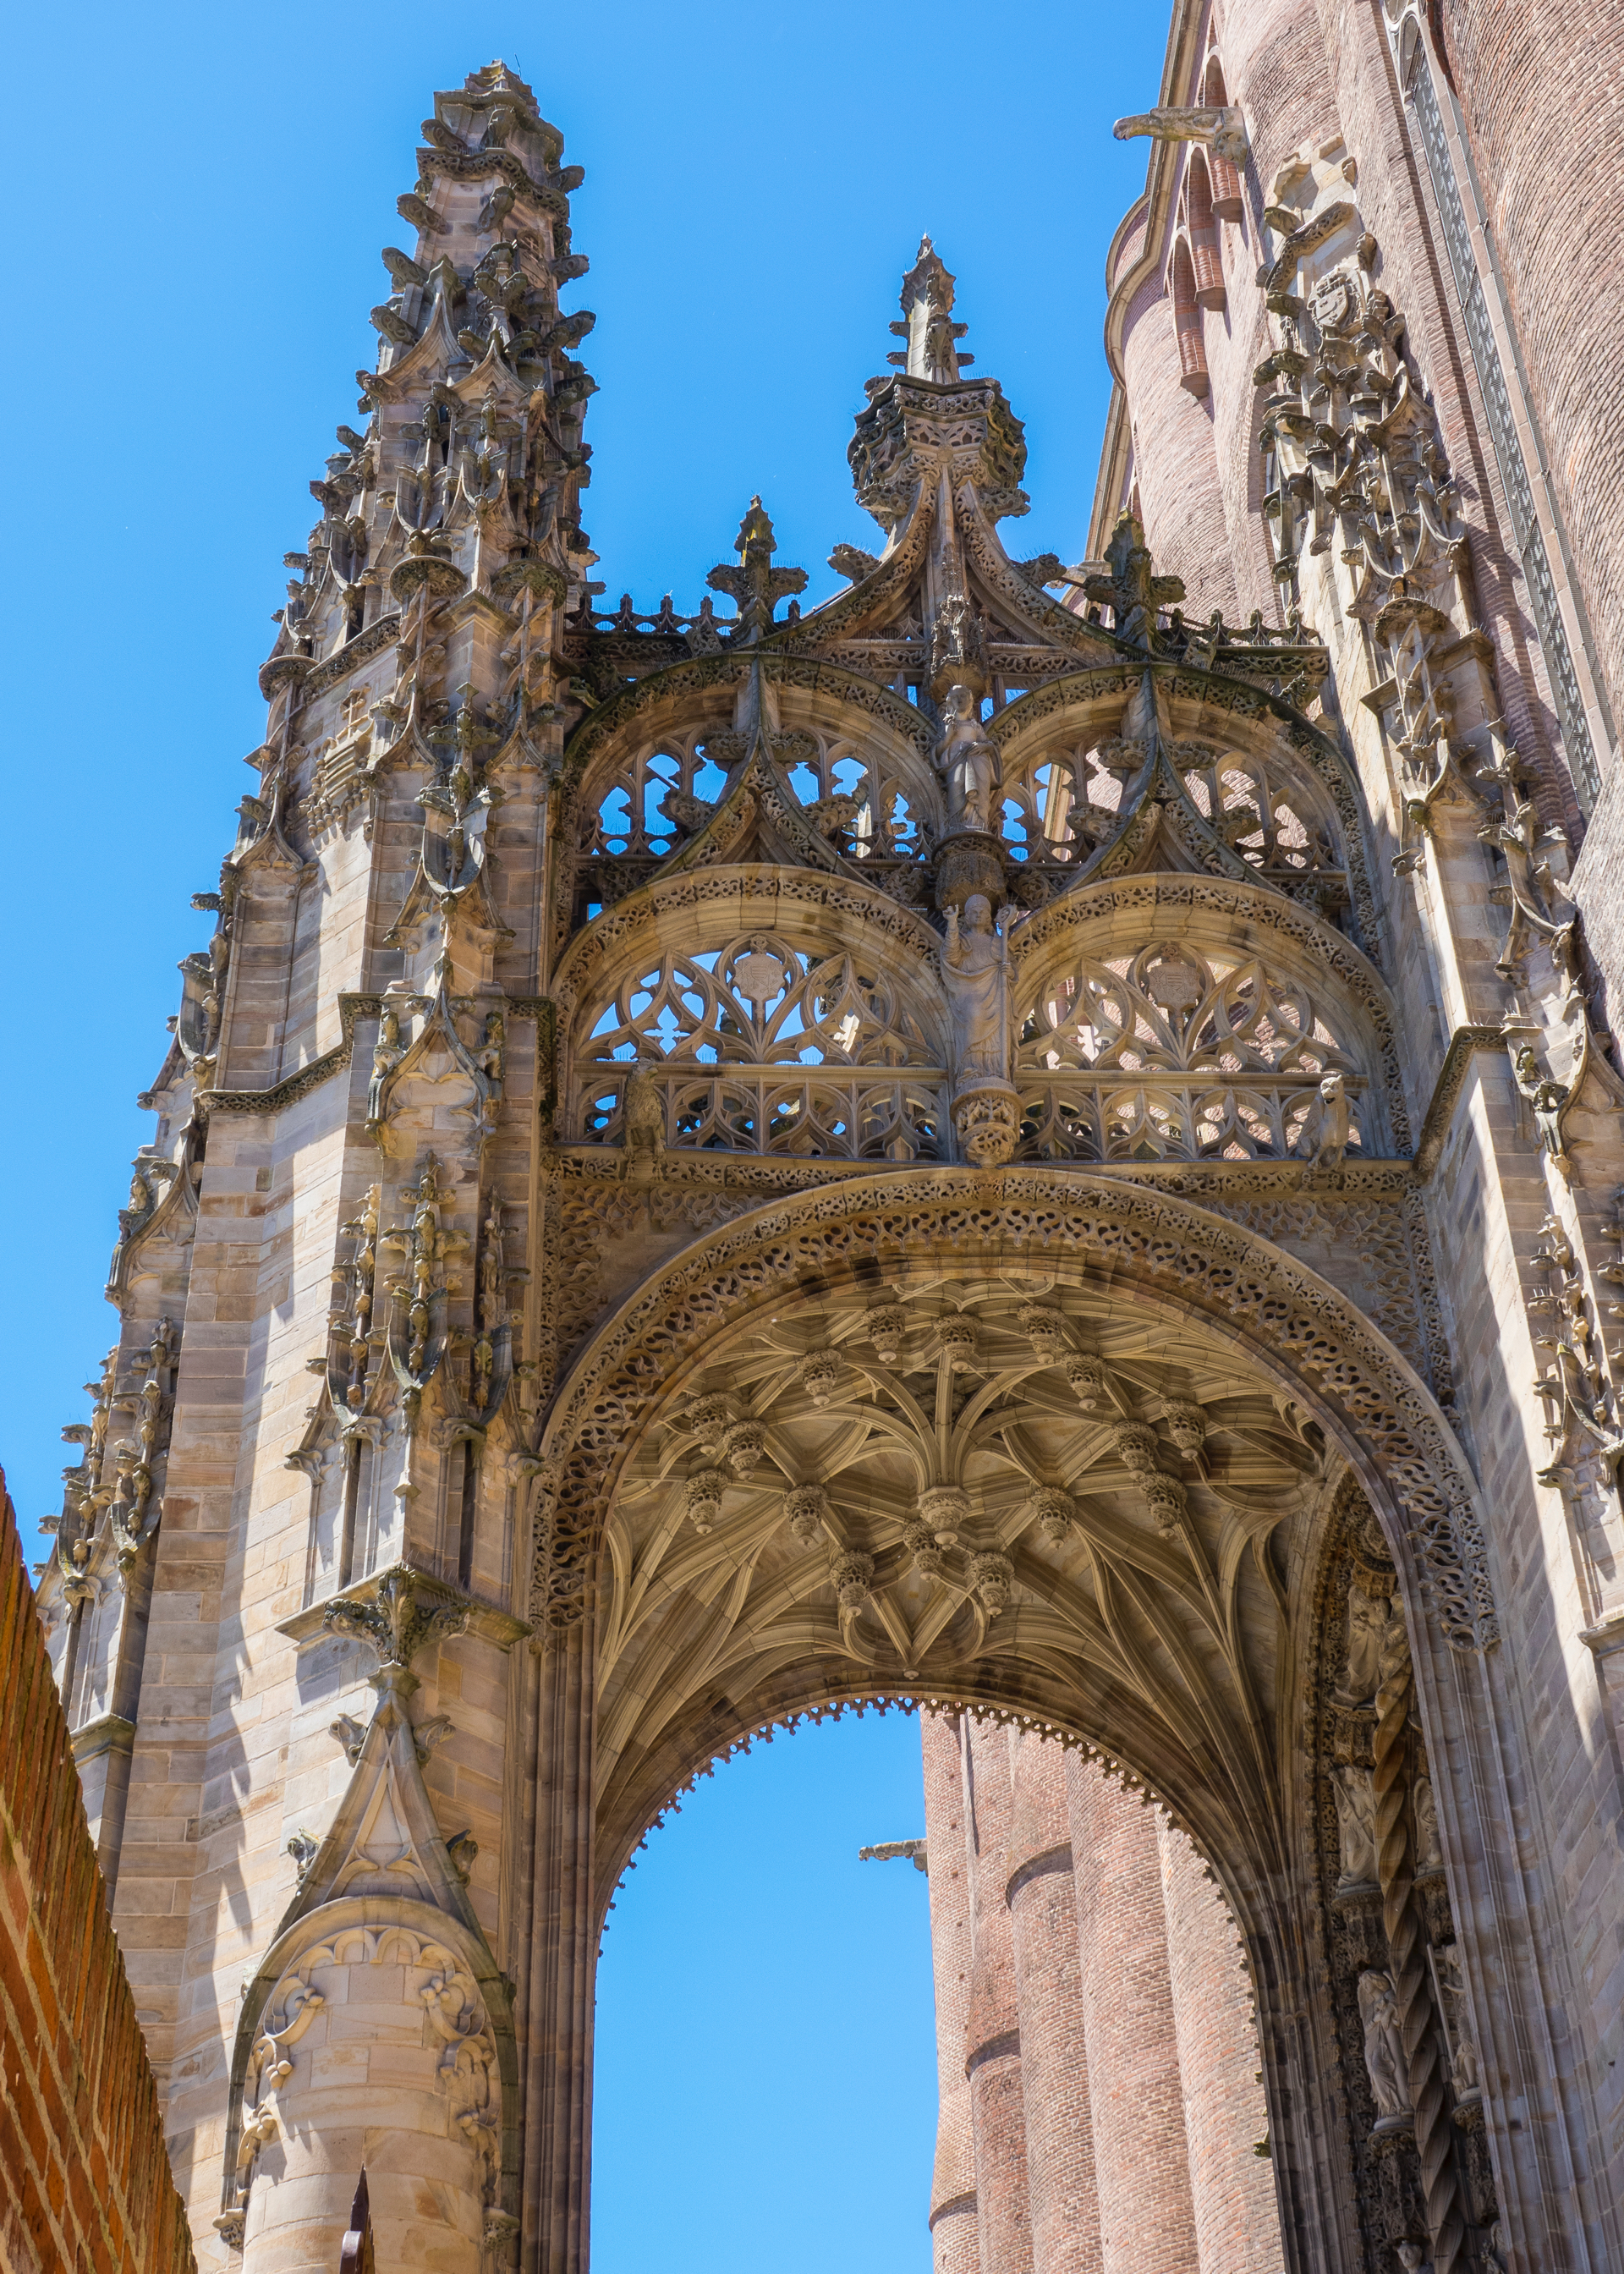 The very ornate, gothic entrance.